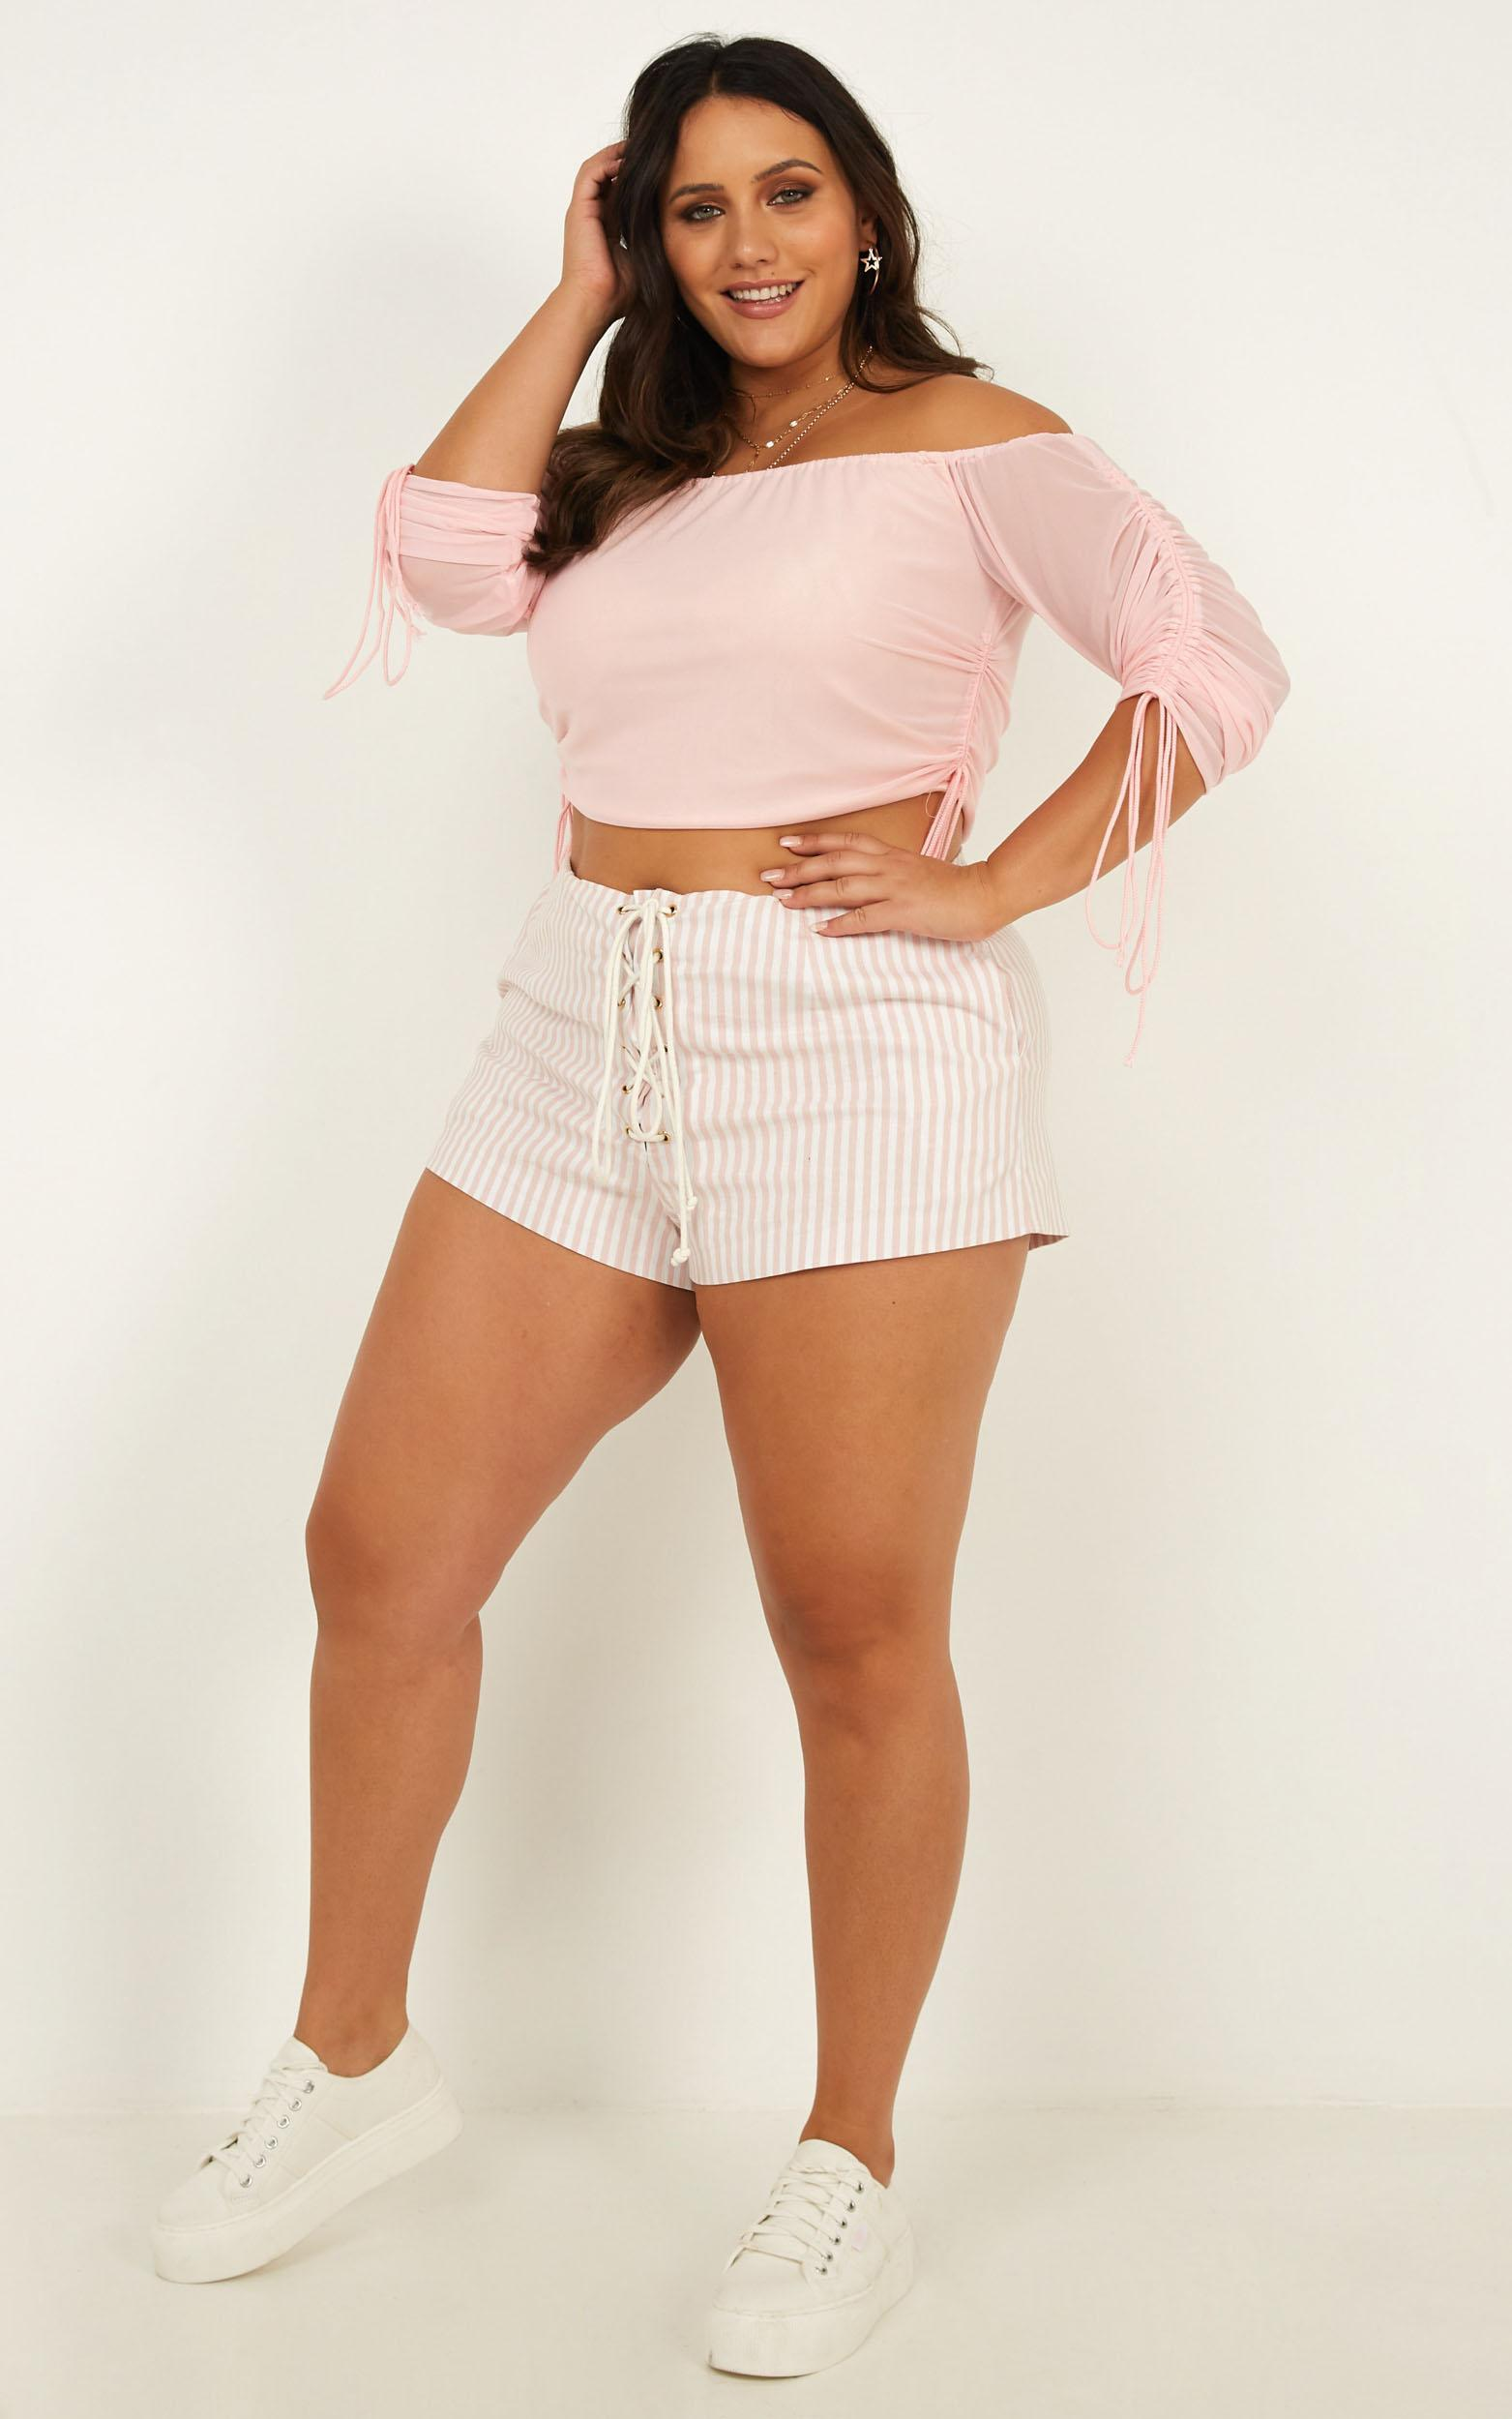 My Pearl Top in pink mesh - 18 (XXXL), Pink, hi-res image number null